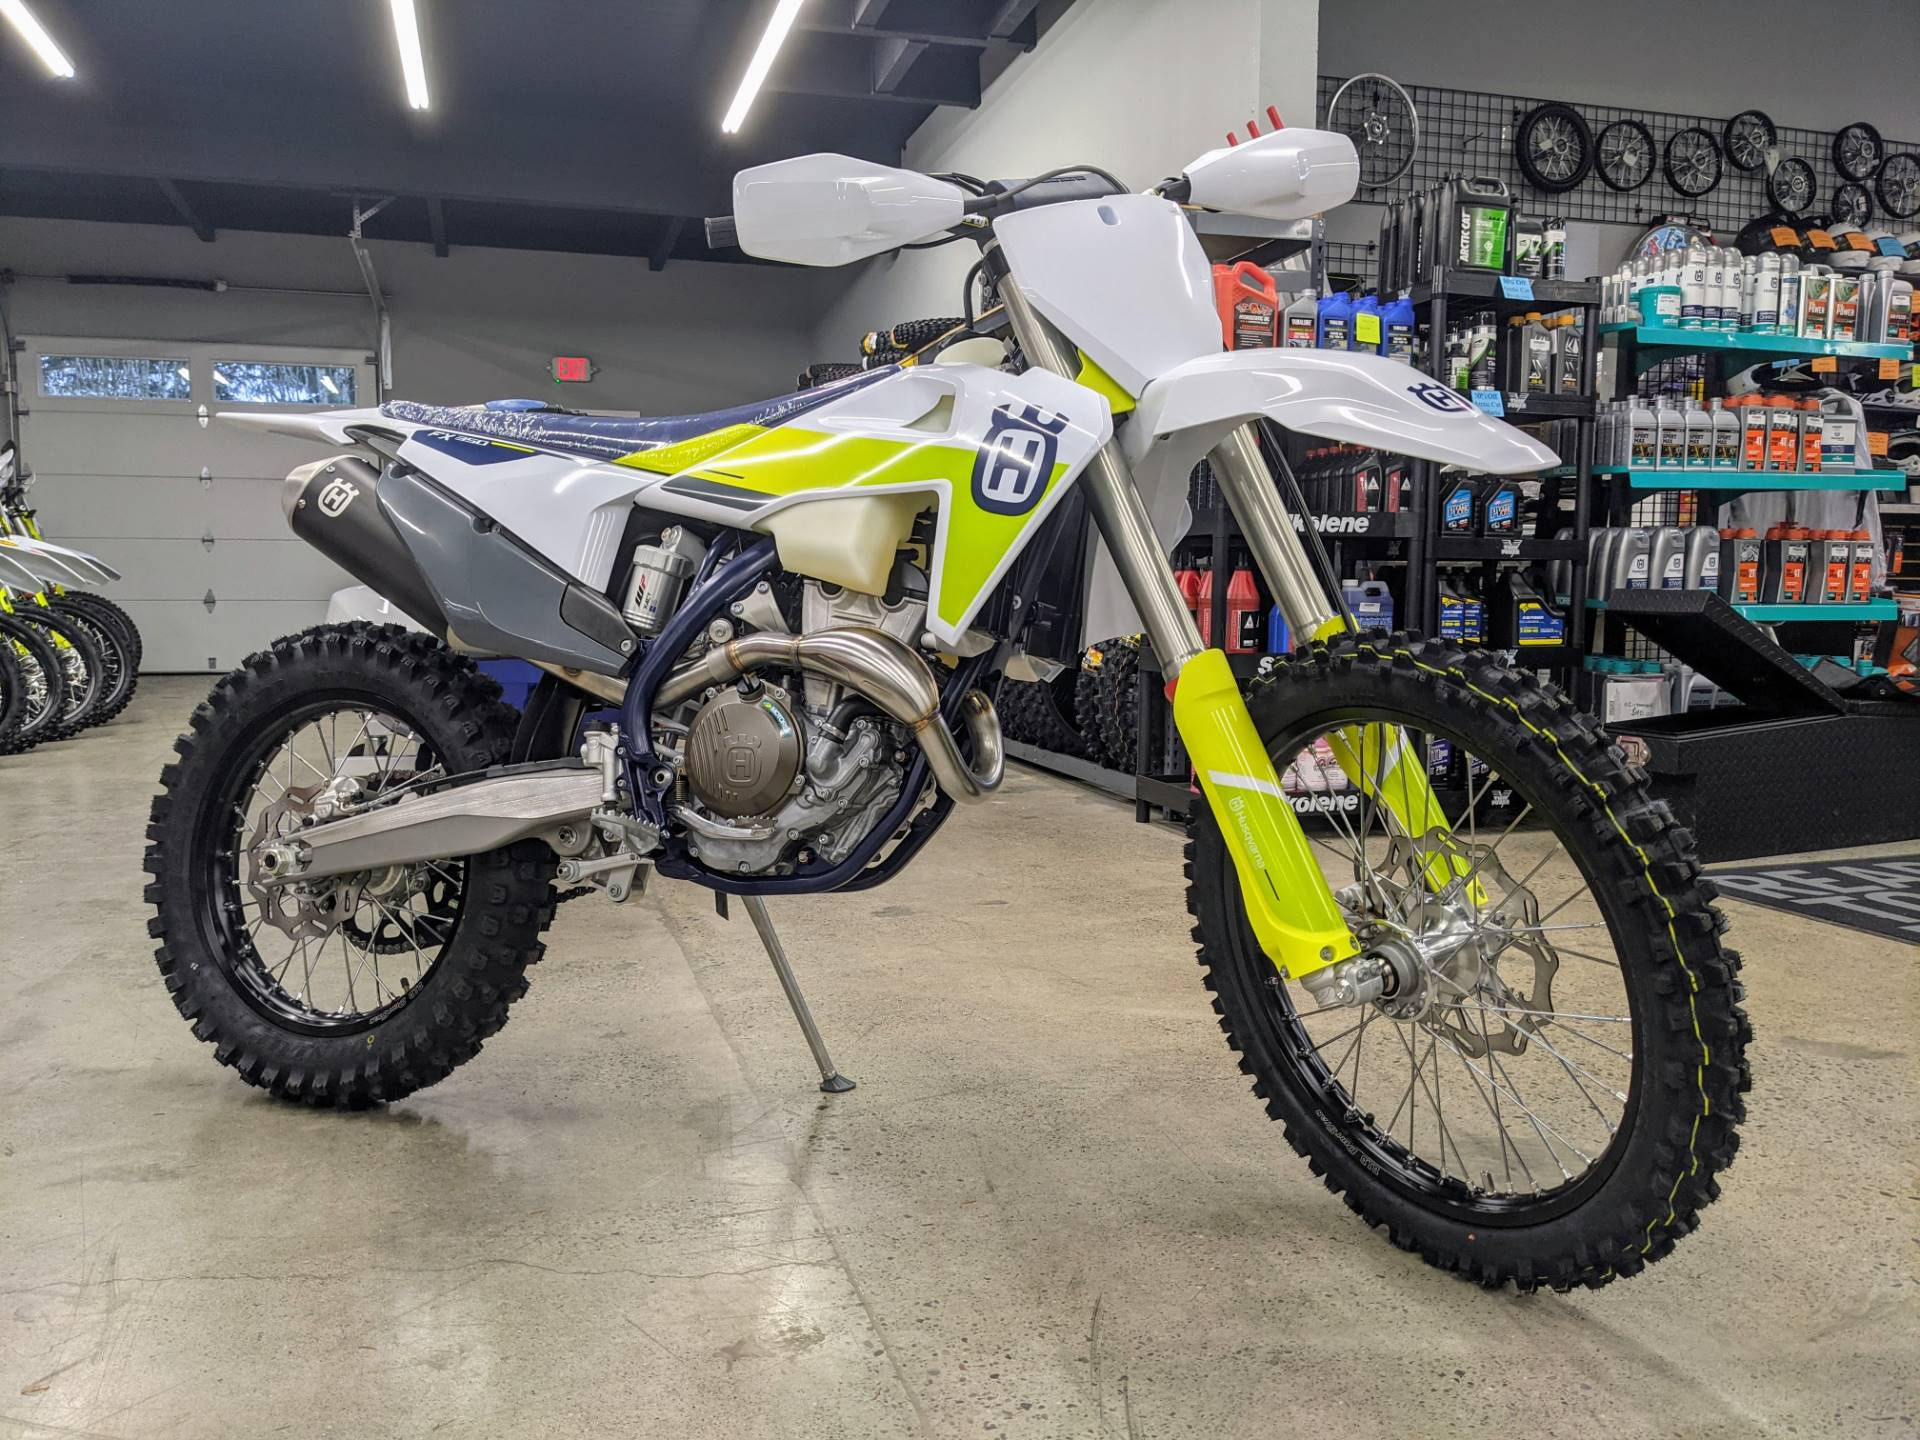 2021 Husqvarna FX 350 in Gresham, Oregon - Photo 2